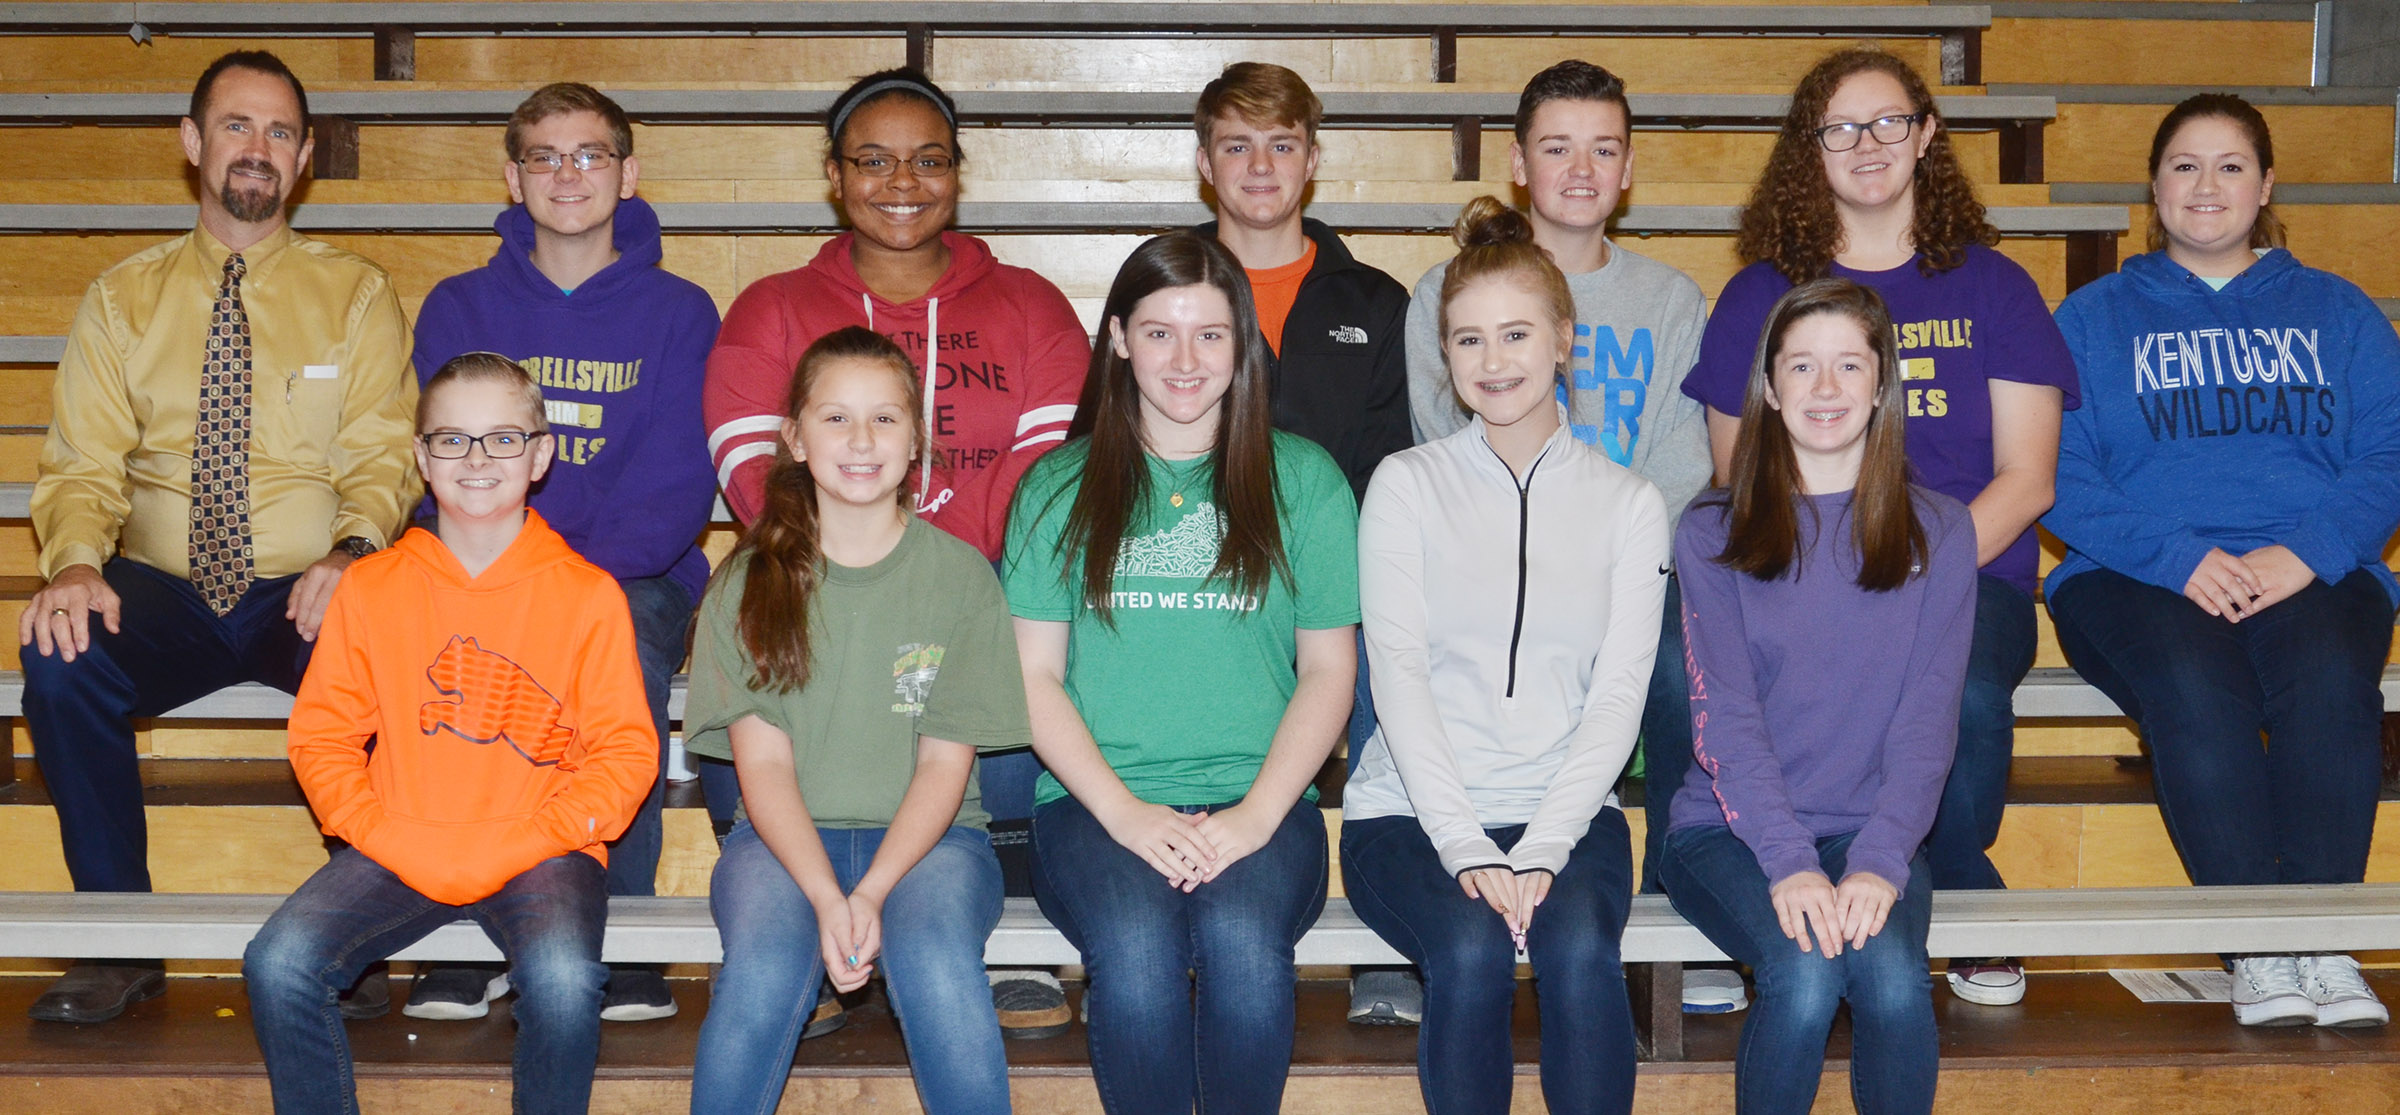 This year's CHS swim team members are, from left, front, Campbellsville Middle School sixth-graders Caleb Holt and Mollie Bailey and CHS sophomores Alli Wilson, Isabella Osborne and Gracyne Hash. Back, coach Steve Doss, juniors Brandon Greer and Natalie Caldwell, senior Alex Doss and sophomores Gavin Johnson, Emily Rodgers and Aleah Knifley. Absent from the photo is senior Bryce Richardson.